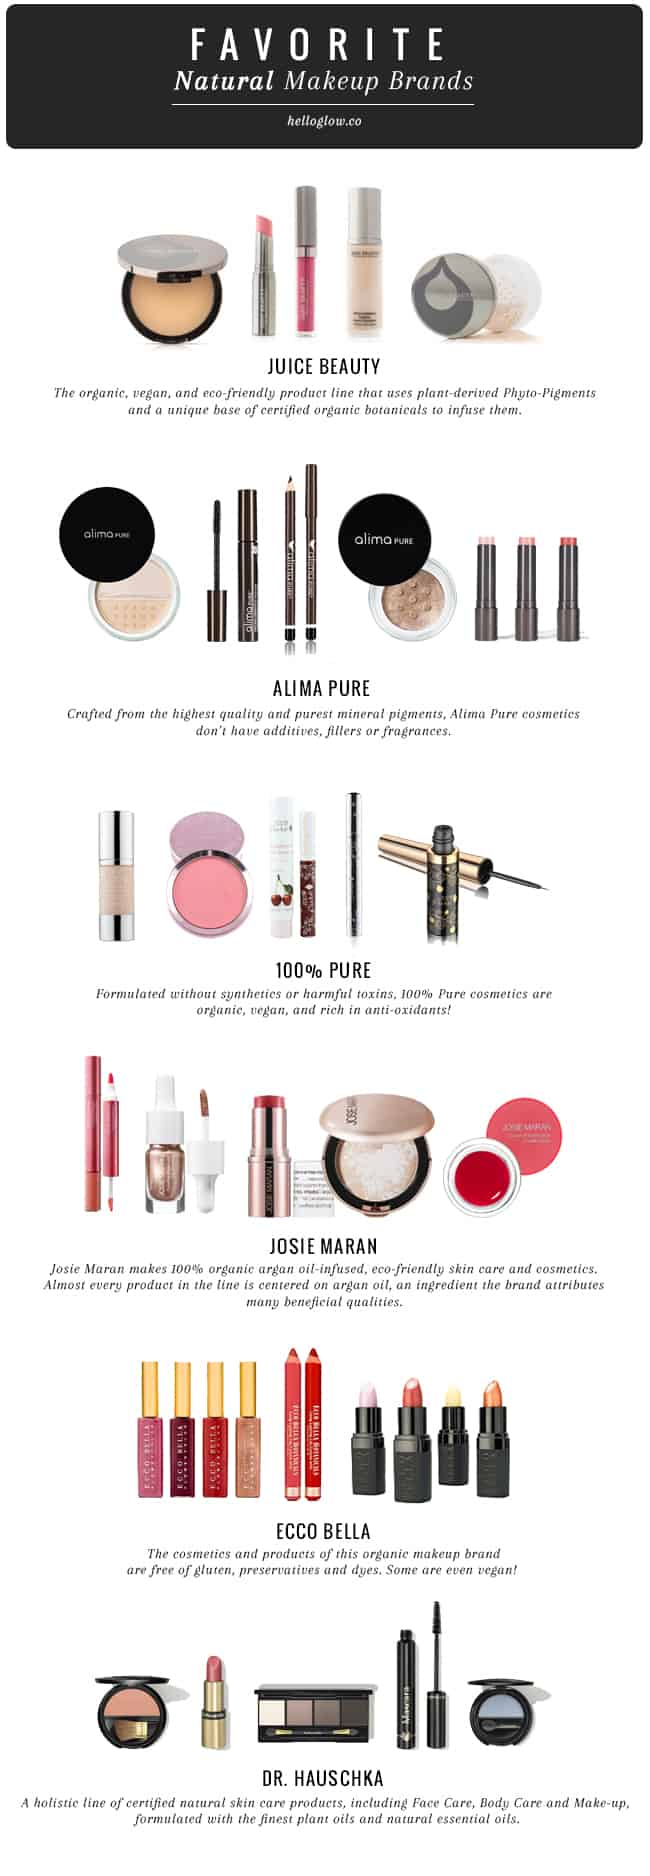 9 Favorite Natural Makeup Brands